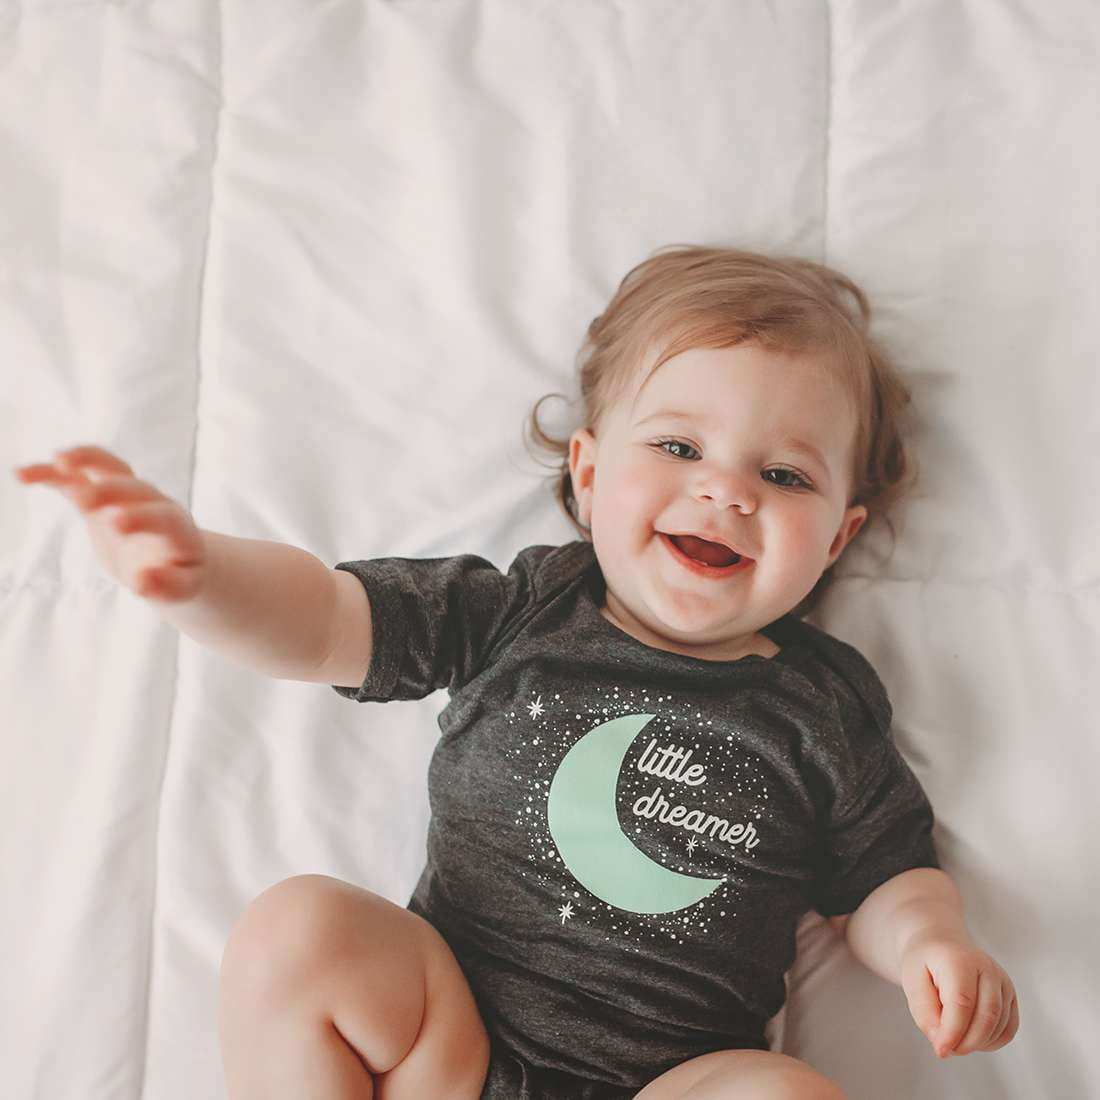 Little Dreamer baby bodysuit - wholesale - Sweetpea and Co.